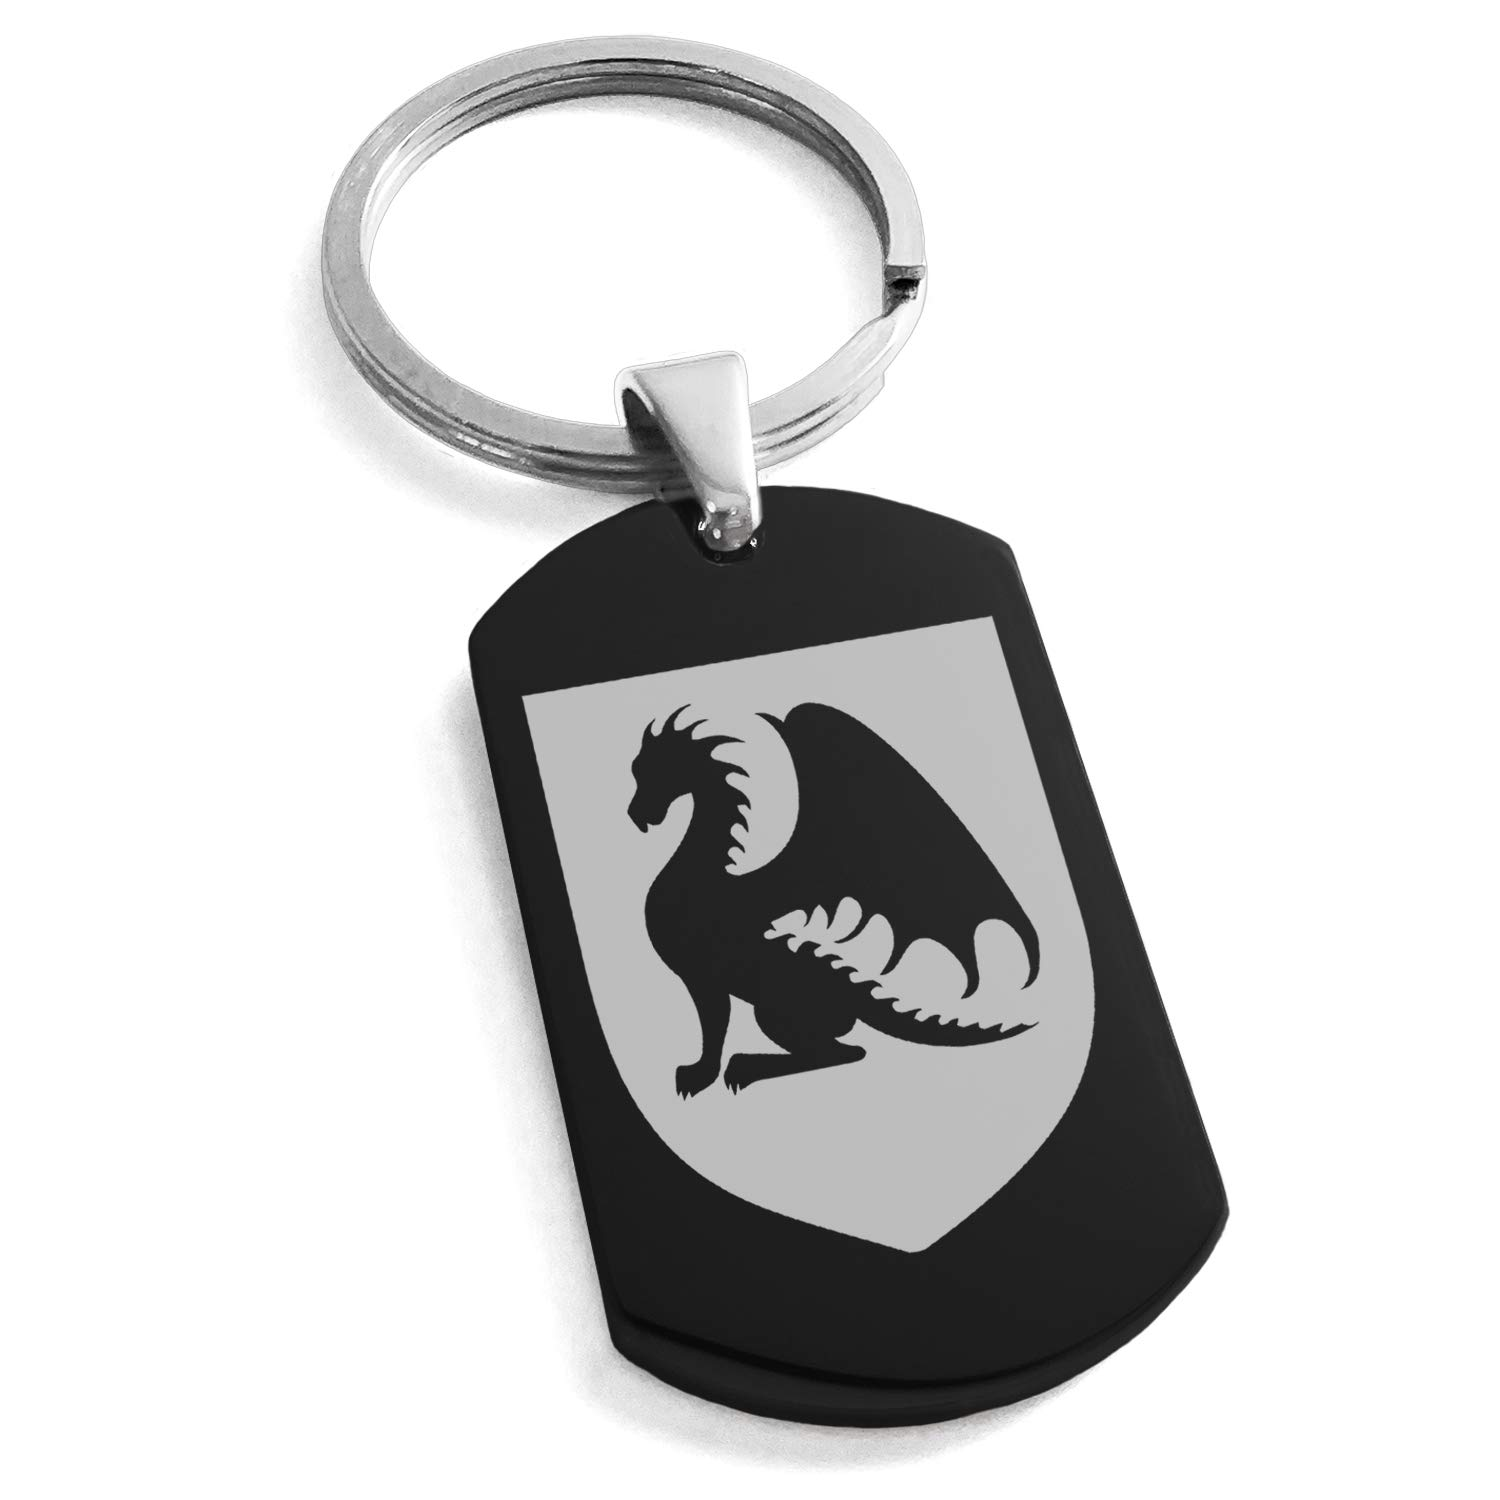 Tioneer Black Stainless Steel Dragon Guardian Coat of Arms Shield Symbol Engraved Dog Tag Keychain Keyring